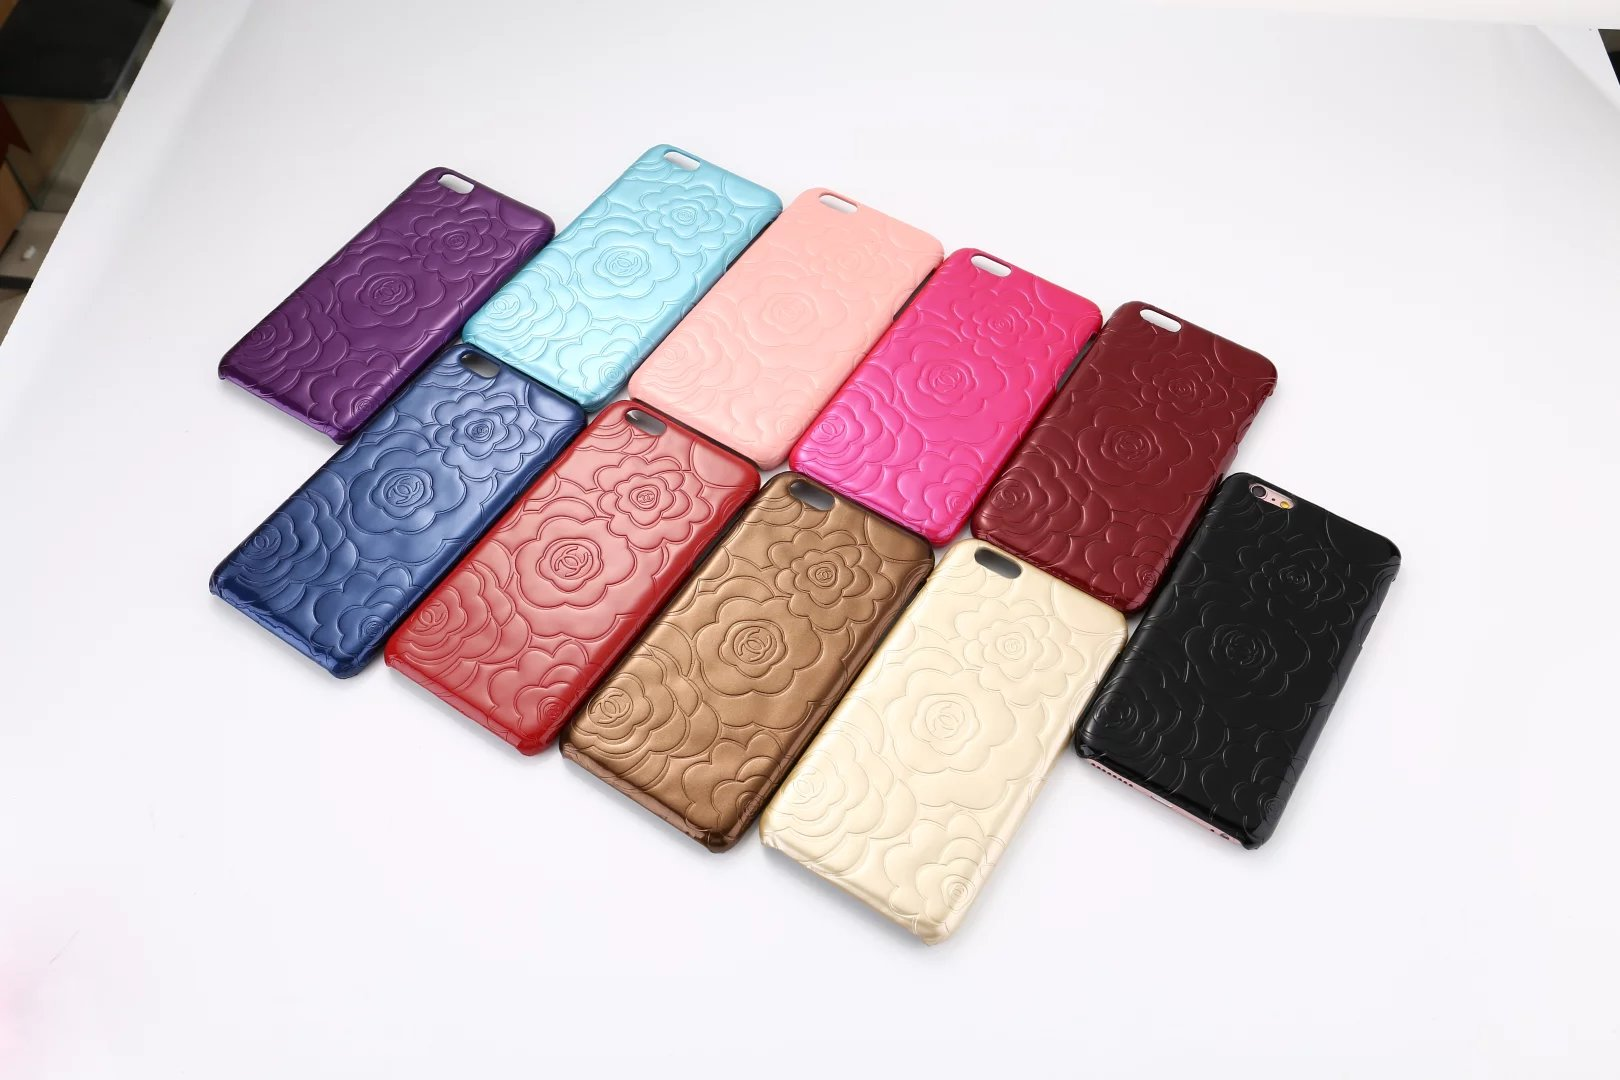 cell phone cases for iphone 6s apple iphone 6s covers fashion iphone6s case best cover iphone 6s iphone 6s new price cell phone accessories cases iphone 6s case fashion iphone protective cover personalized cases